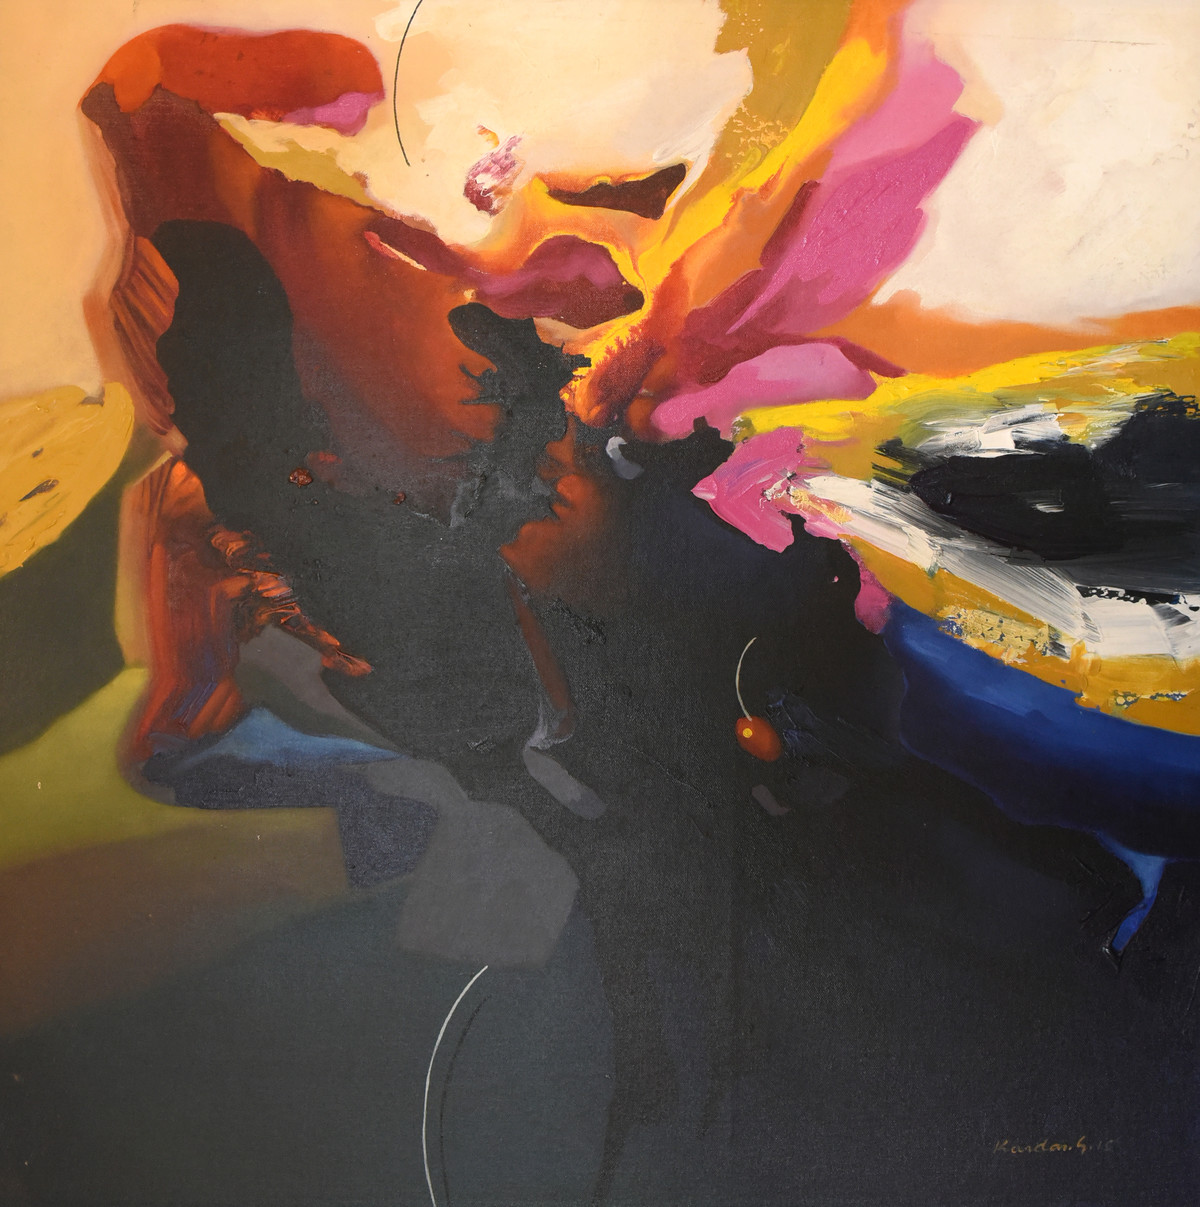 Poetics of Emotions LXXXII by Kandan G, Abstract Painting, Acrylic on Board, Mine Shaft color